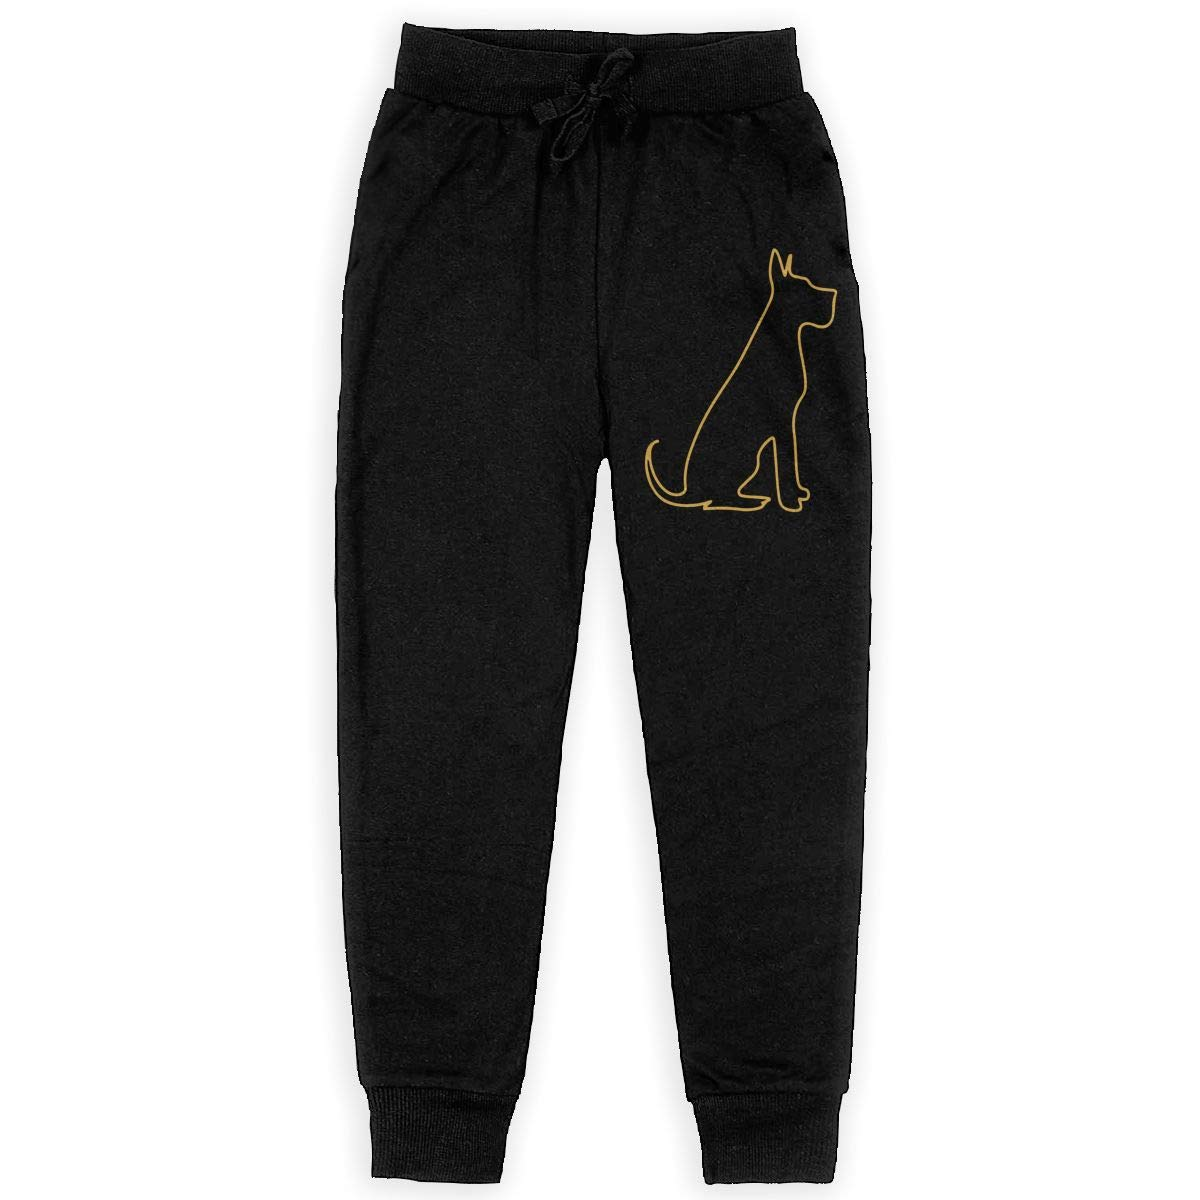 Youth Active Pants for Teen Boy Pitbull Silhouette Soft//Cozy Sweatpants